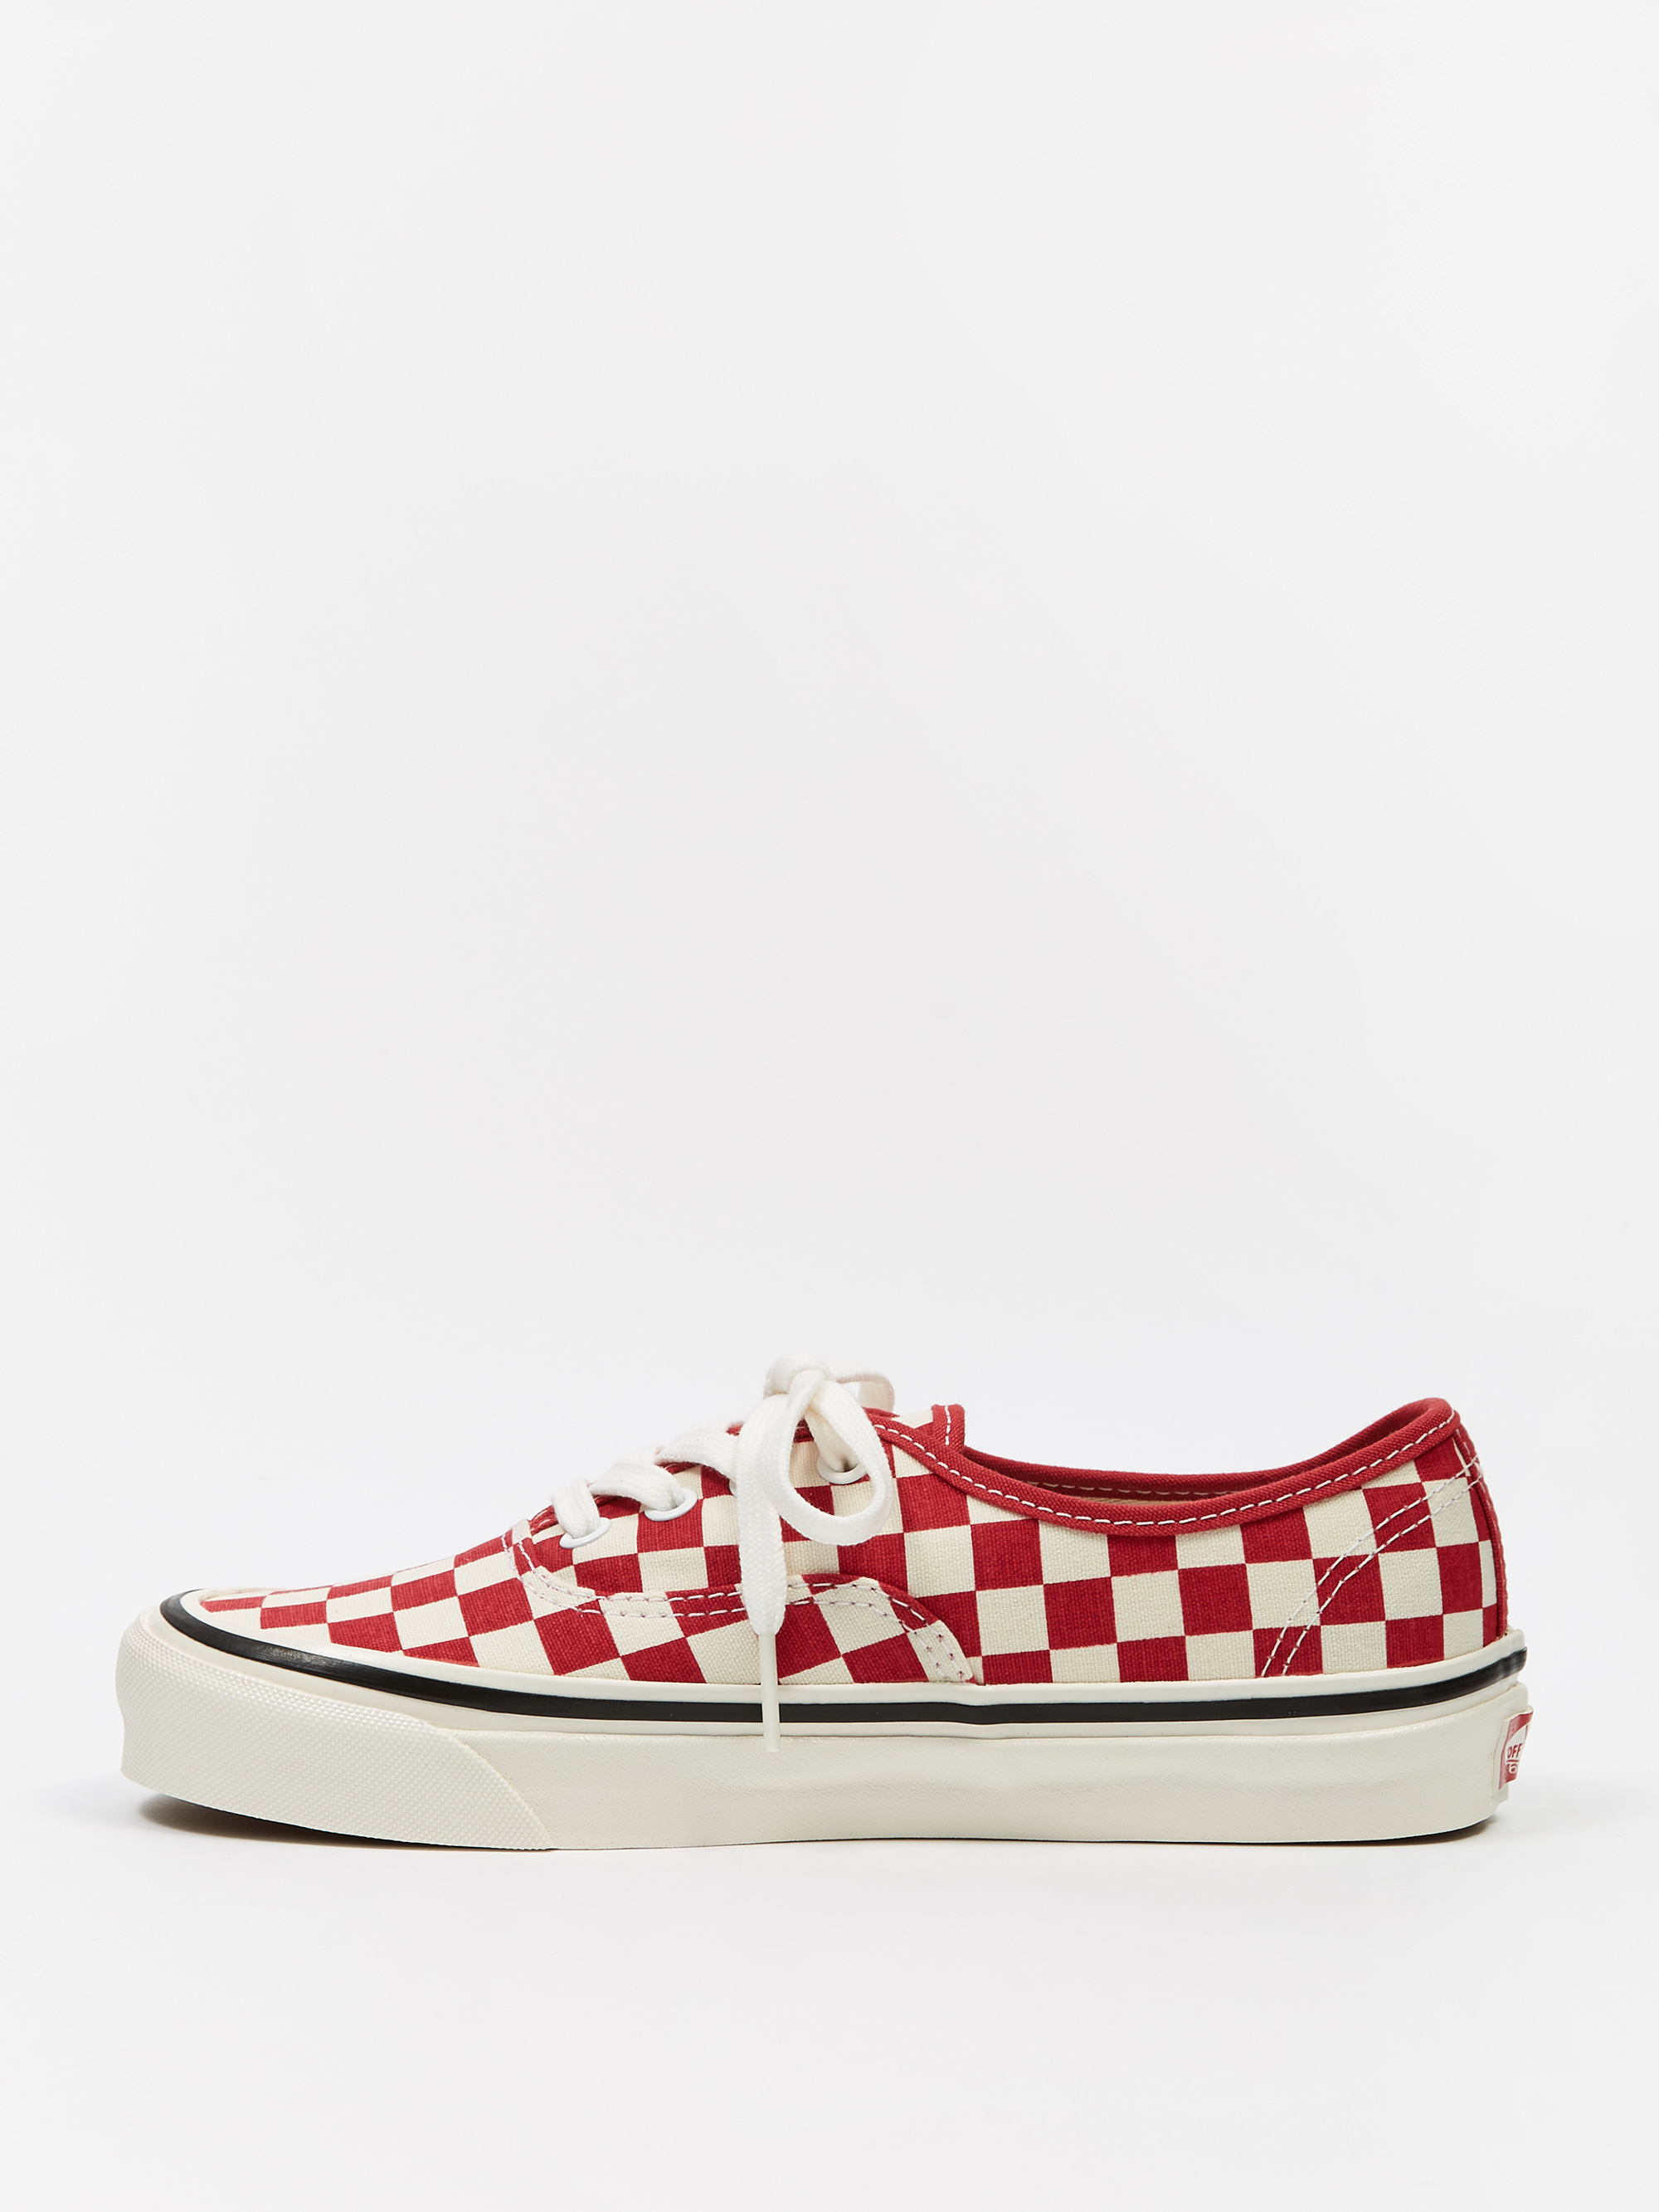 Vans Authentic 44 DX - (Anaheim Factory) Red Check e8475077b